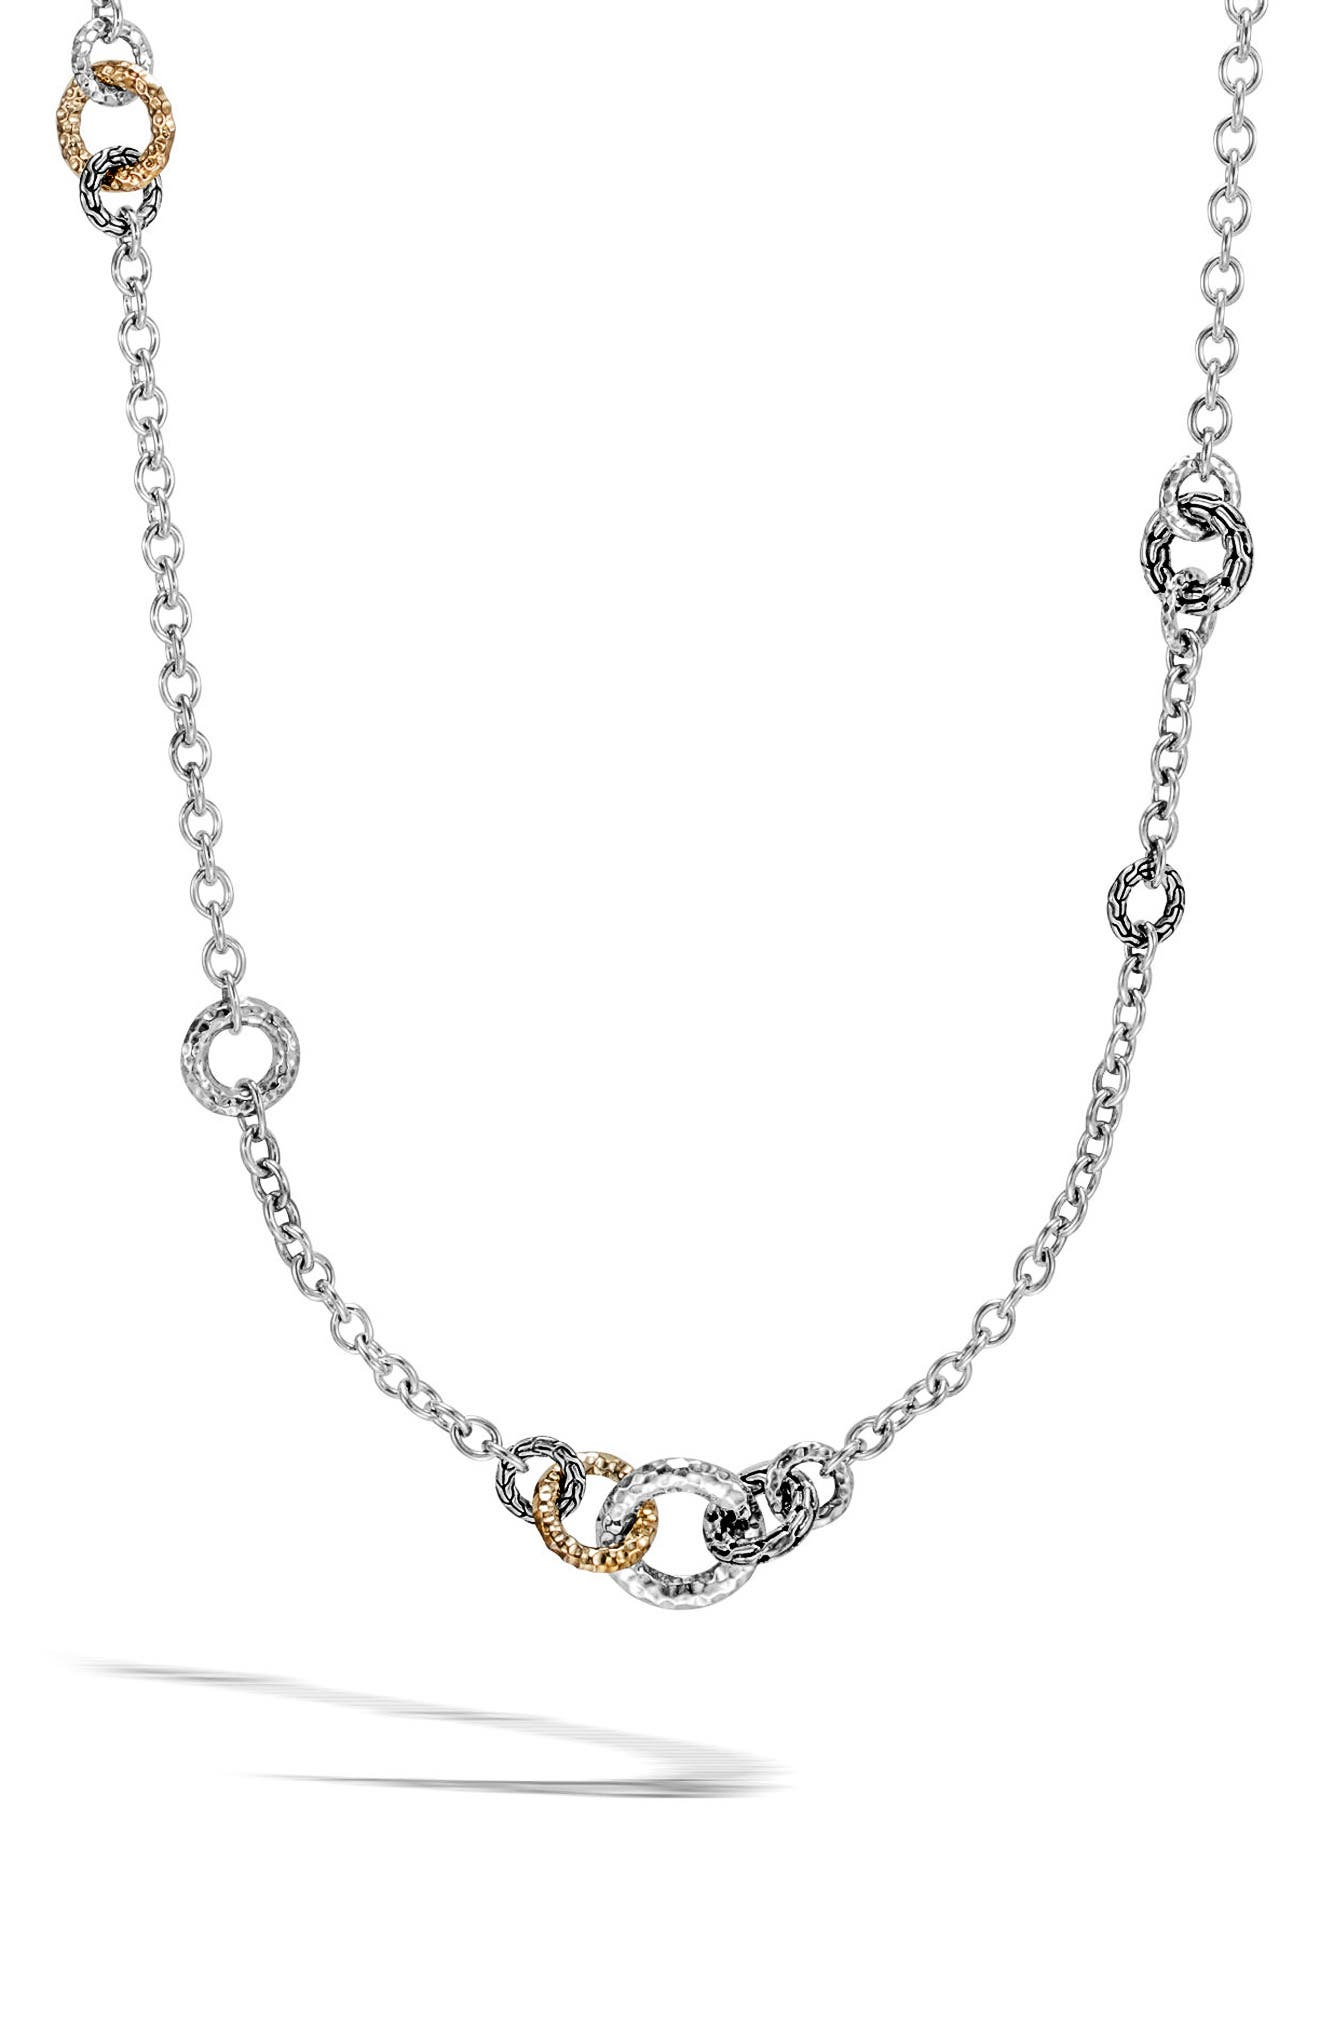 Classic Chain Hammered Link Sautoir Necklace,                             Main thumbnail 1, color,                             GOLD/ SILVER